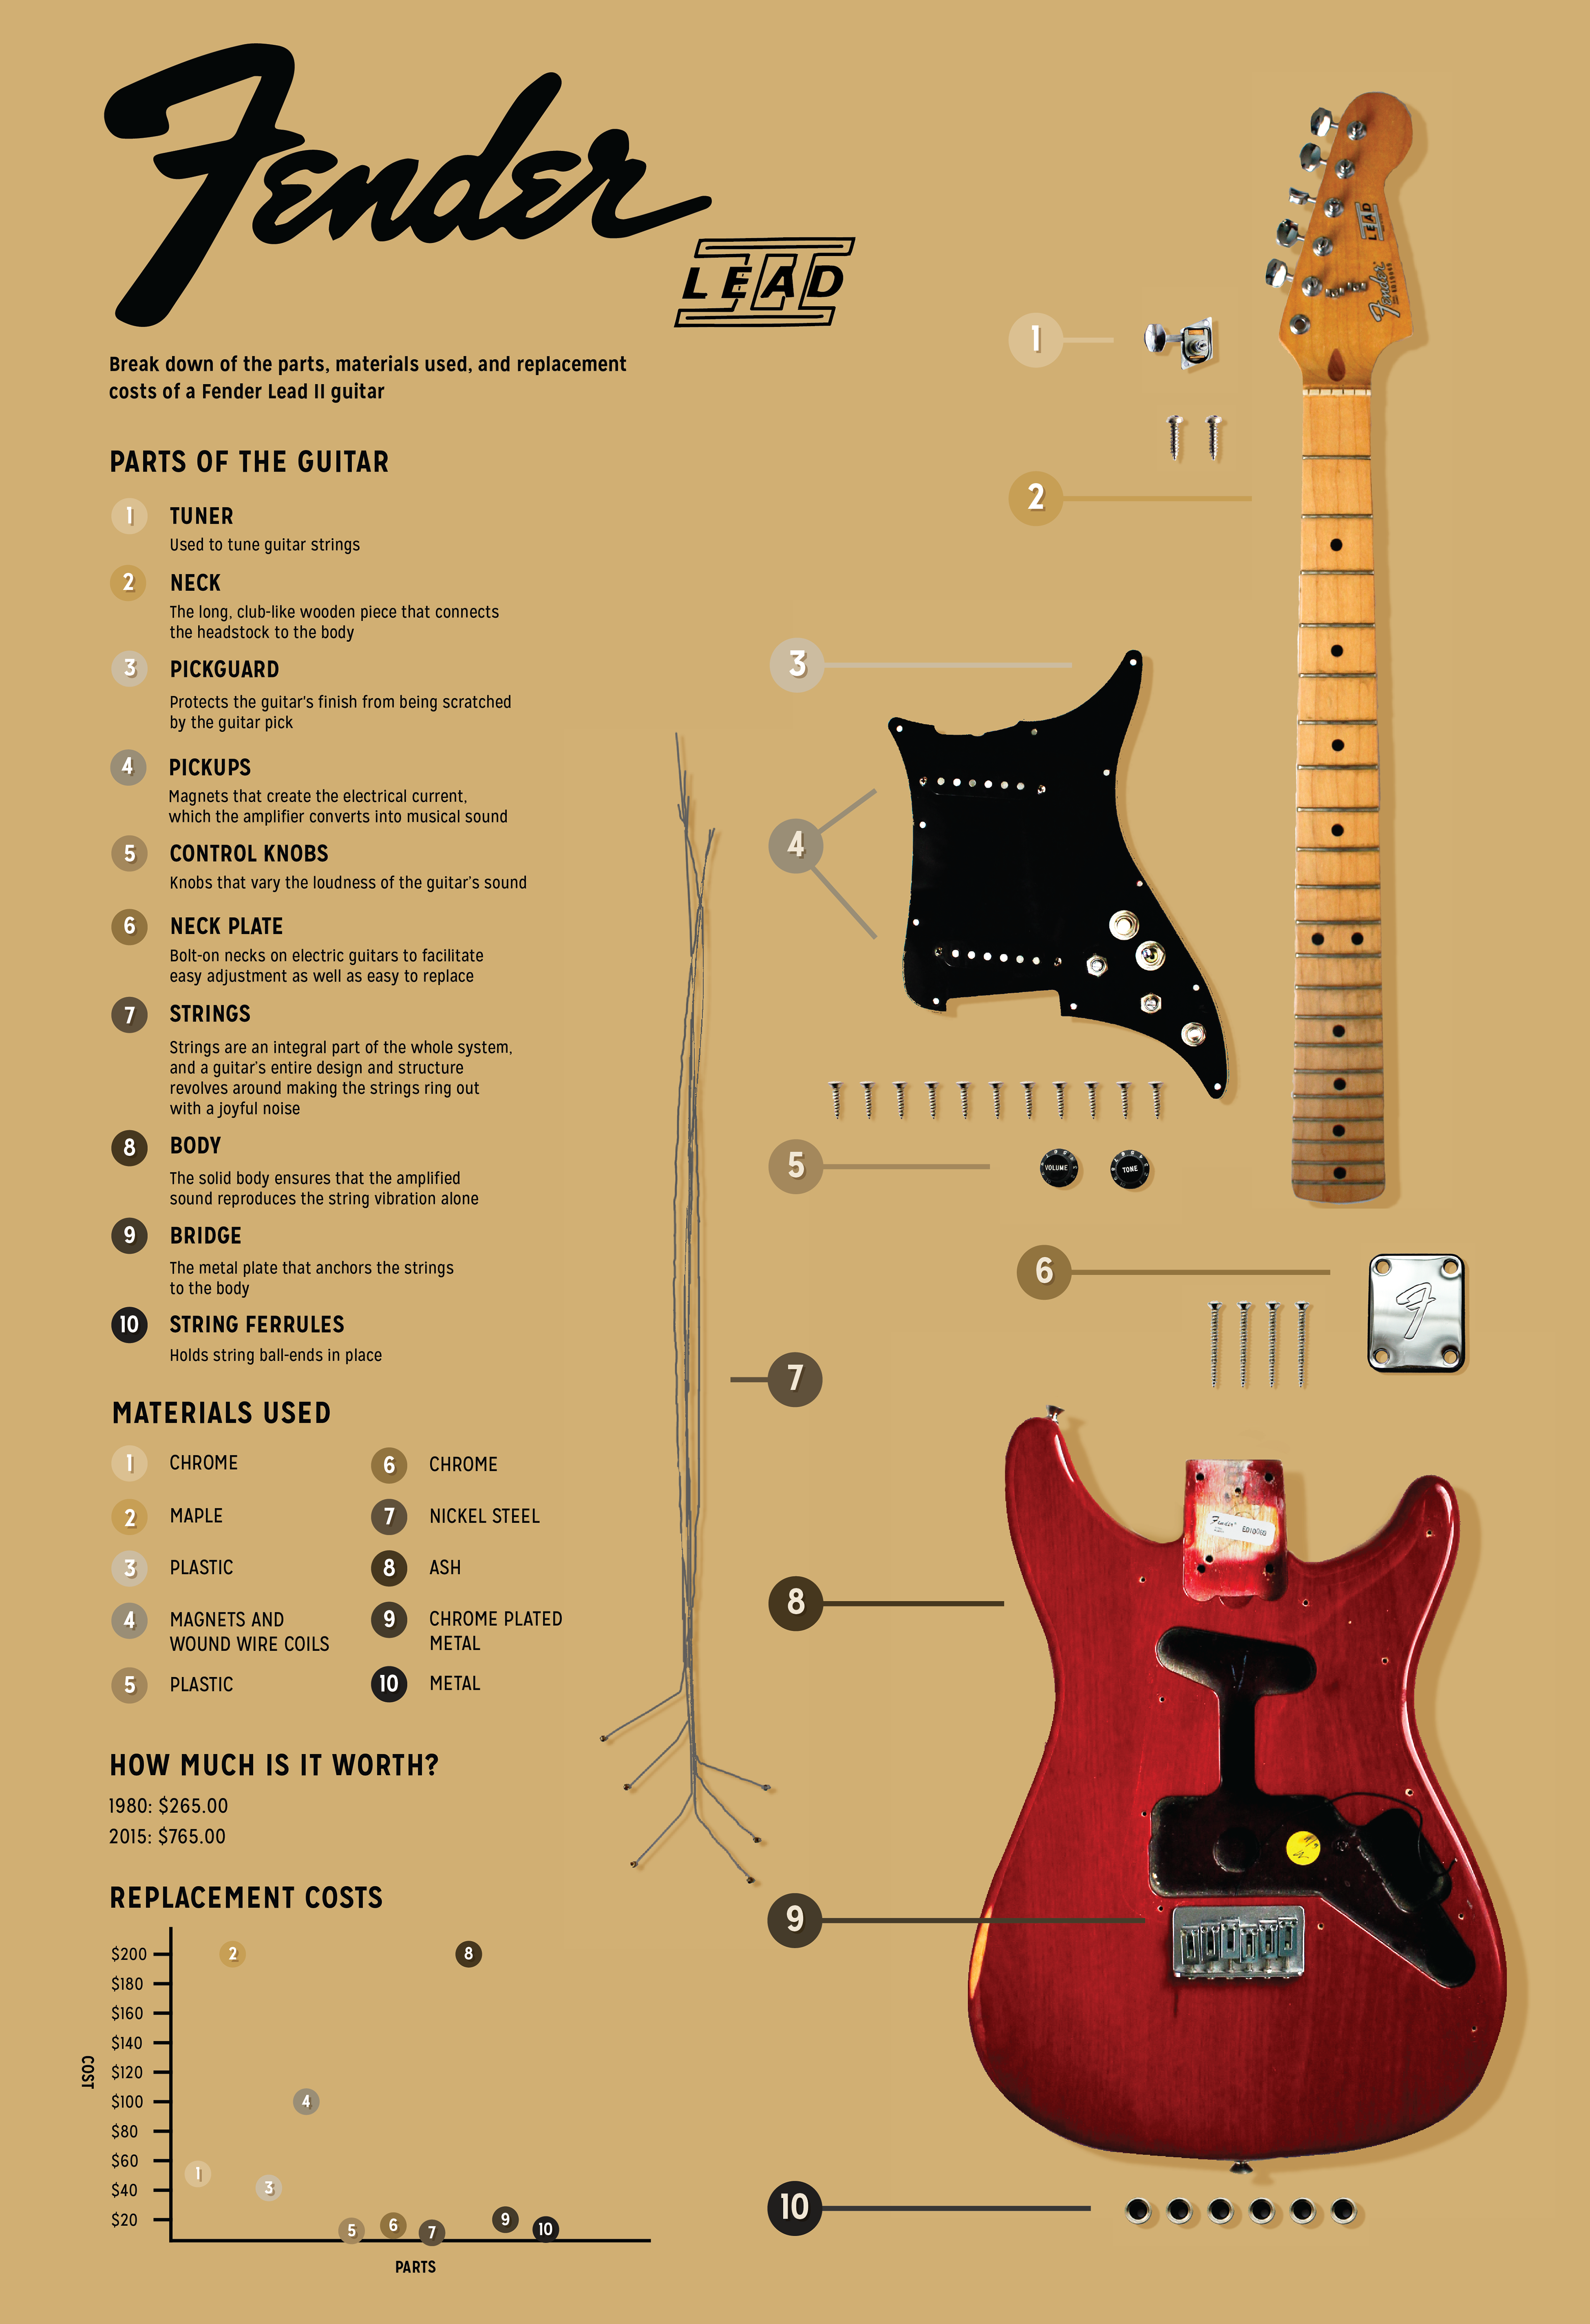 infographic of the parts materials and cost replacements for the fender lead ii guitar [ 3840 x 5612 Pixel ]